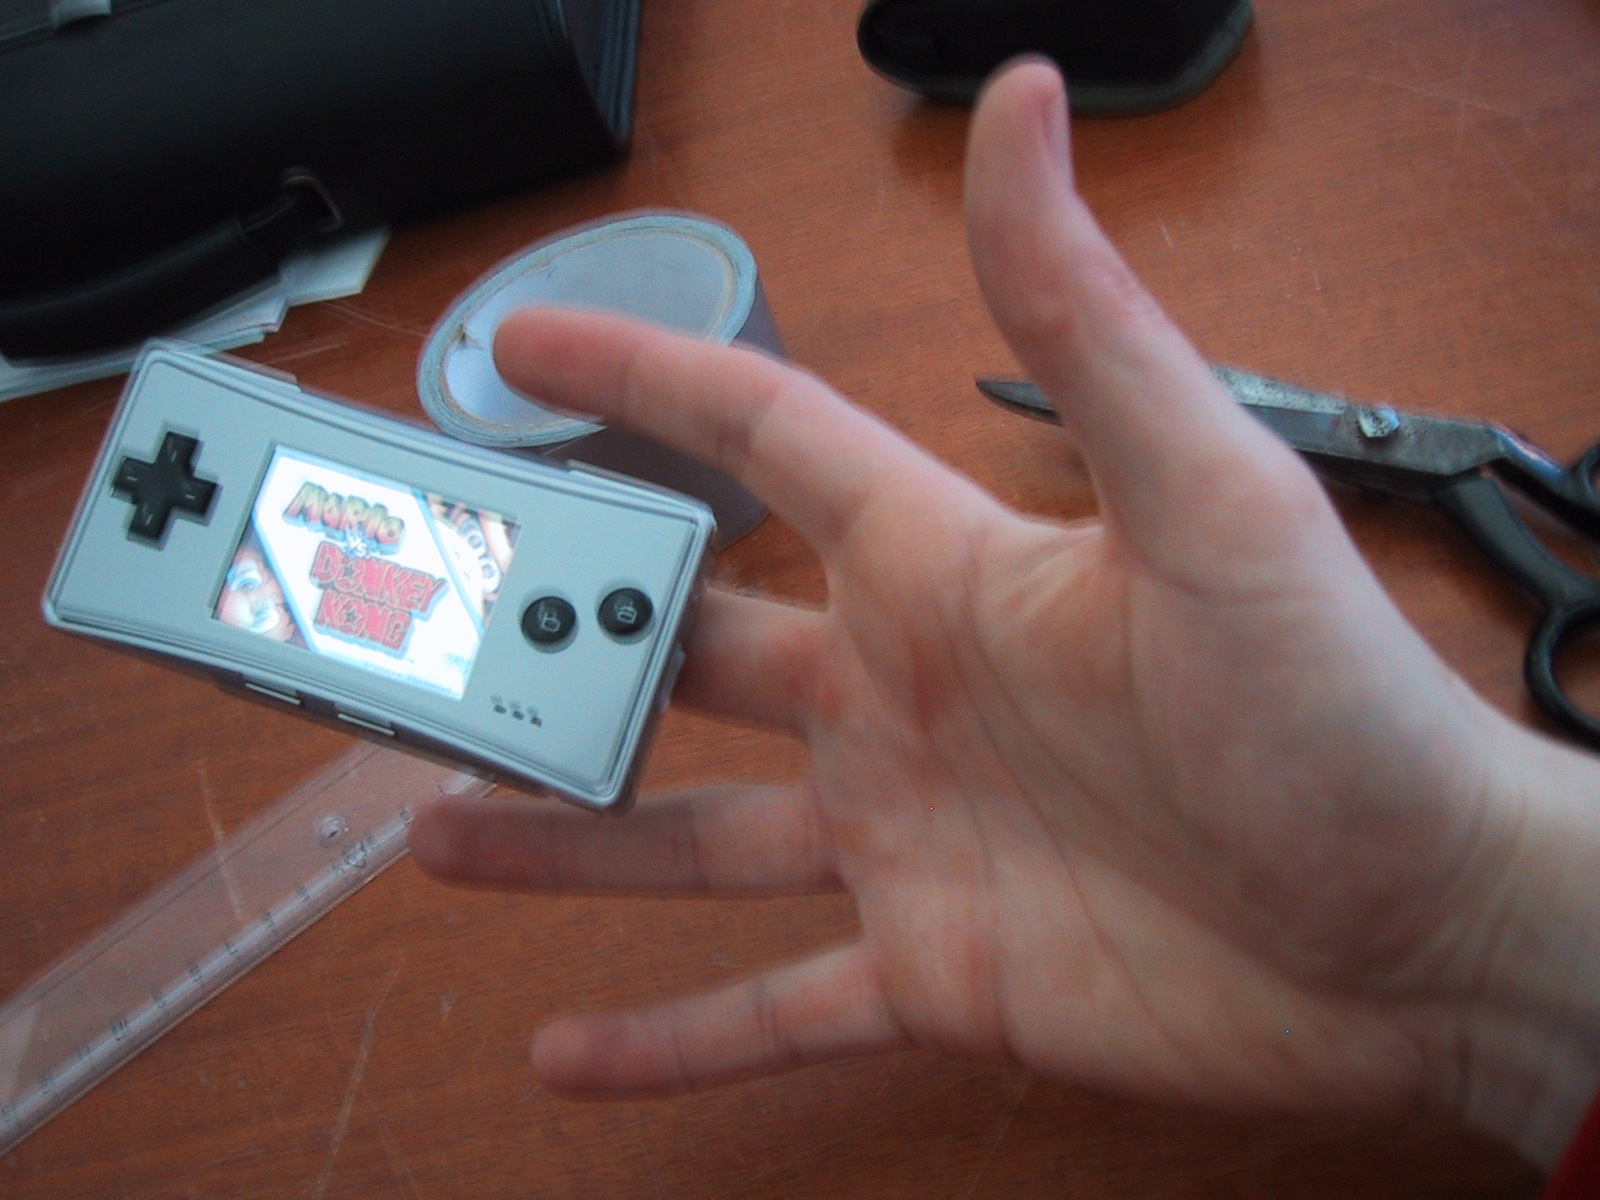 Duct tape fingerhandle for the GameBoy Micro. (english)